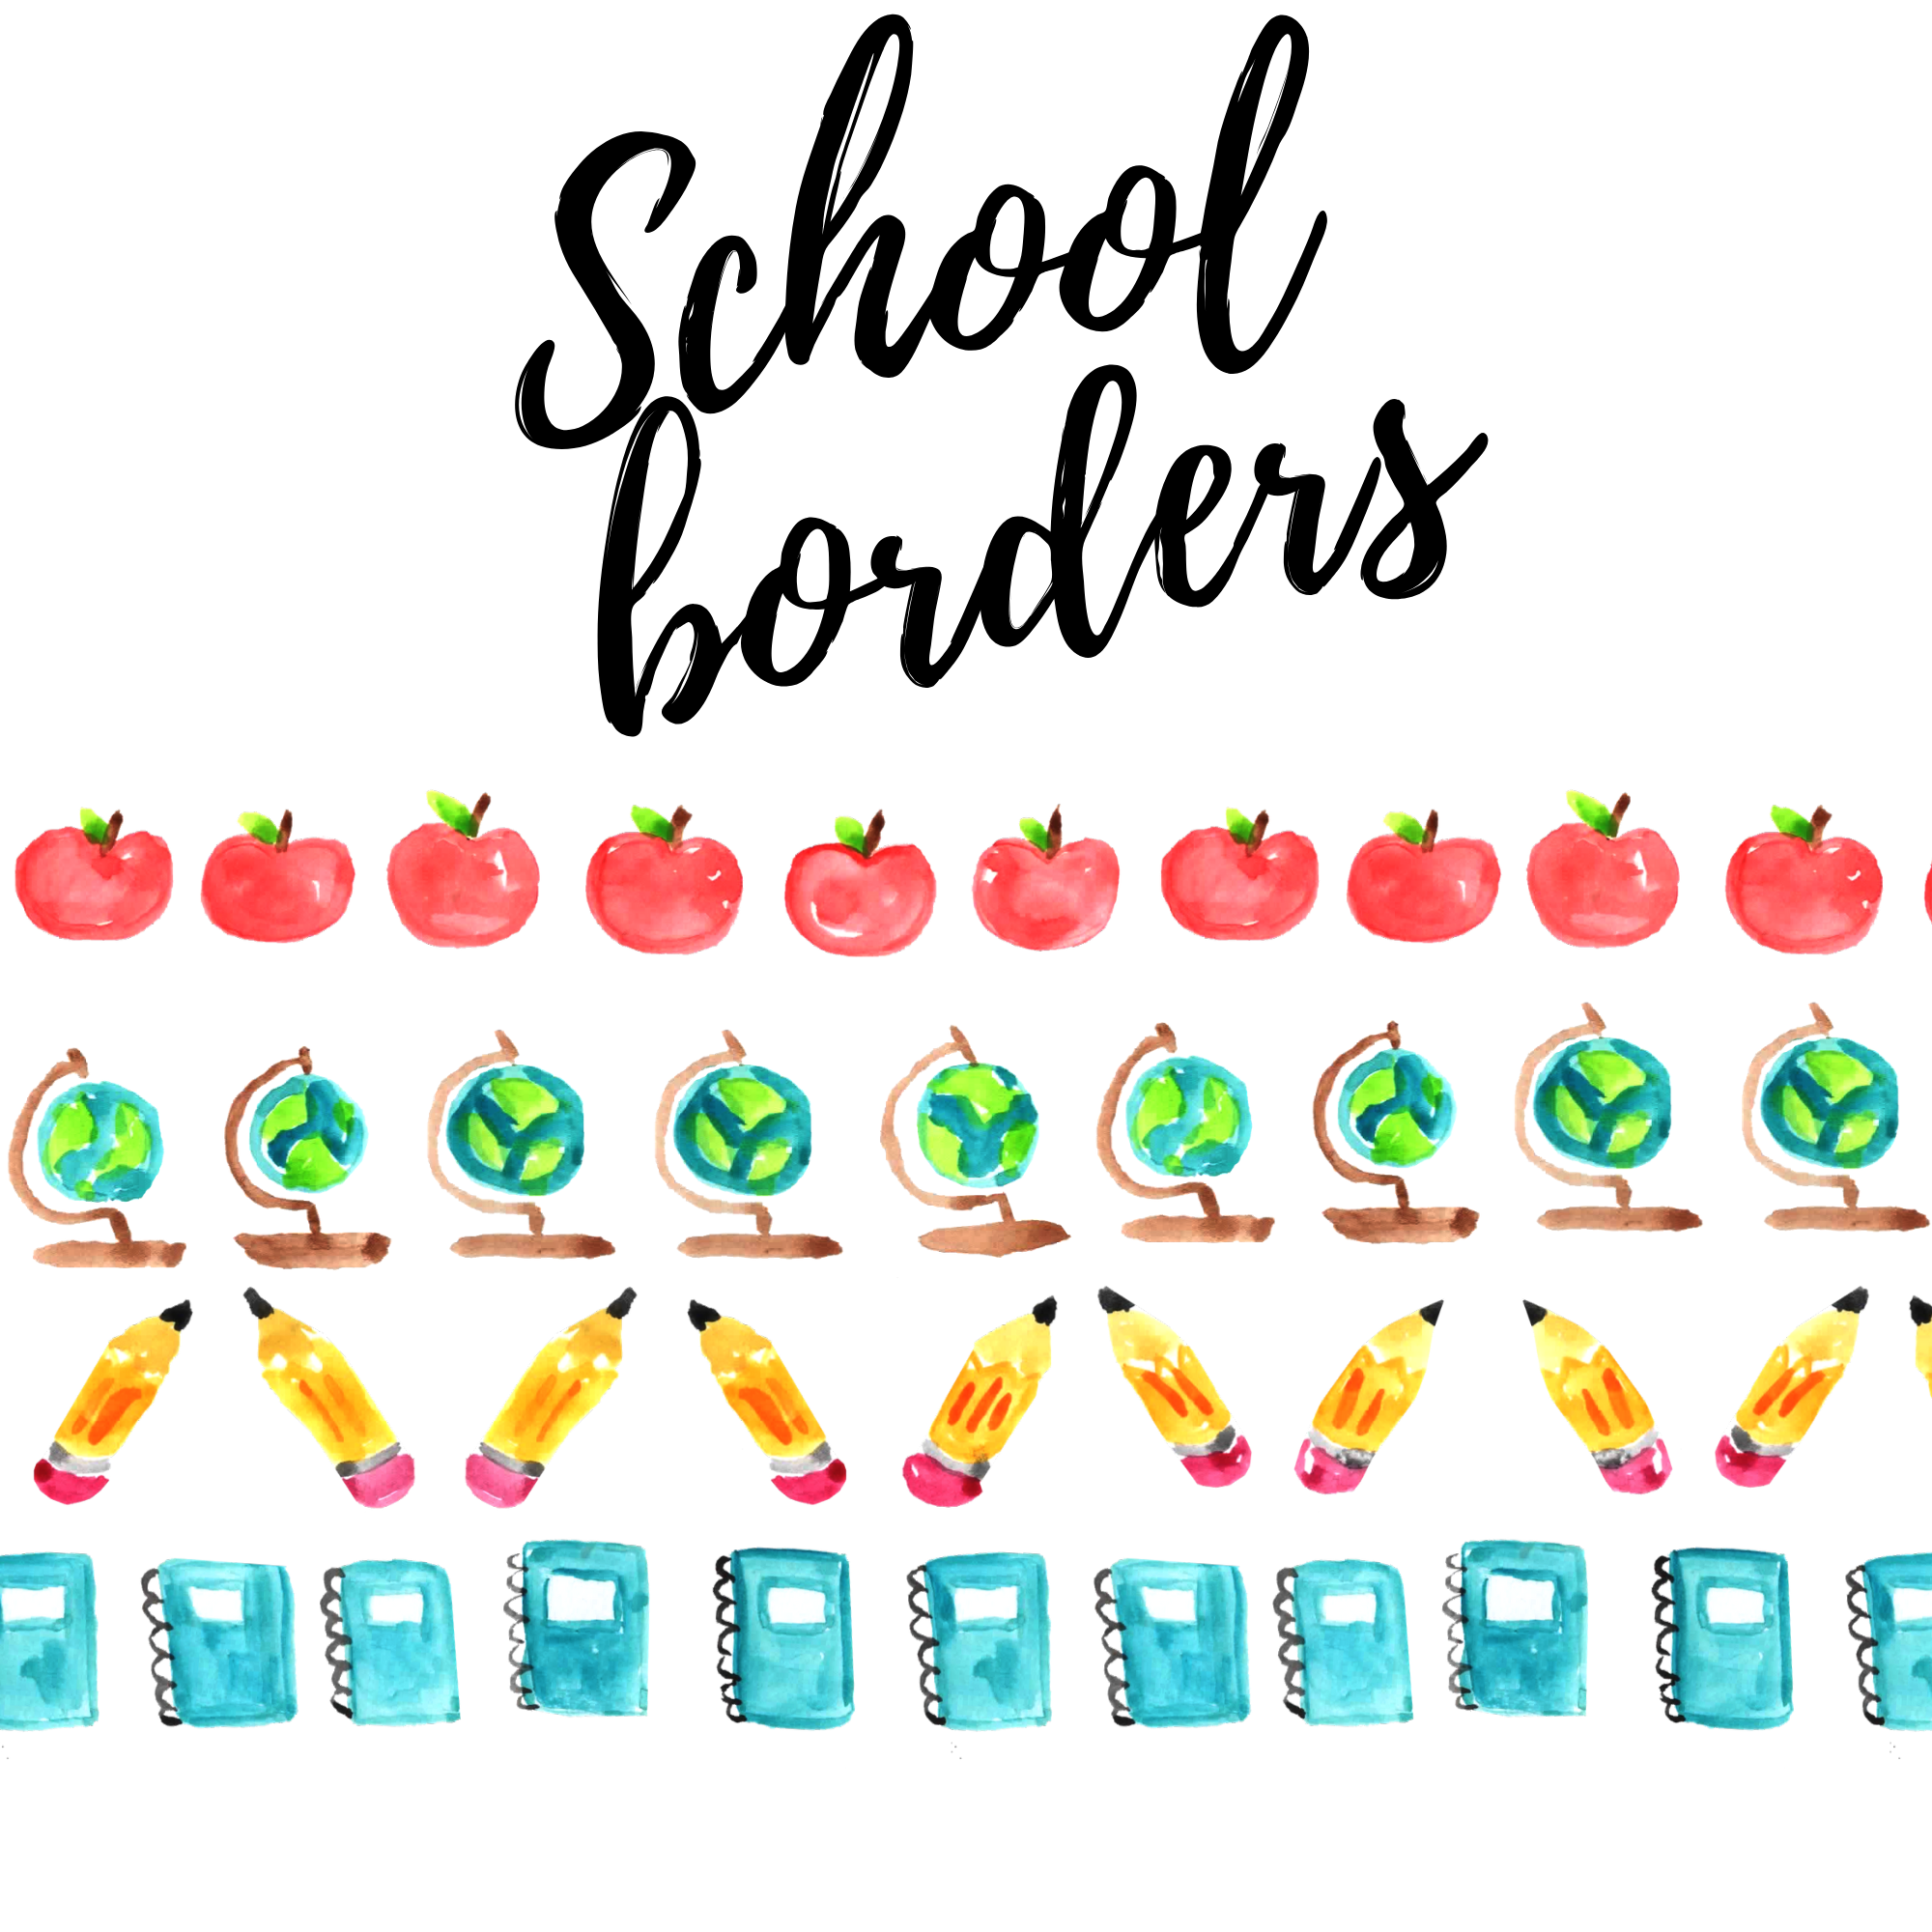 FREE back to school borders clipart